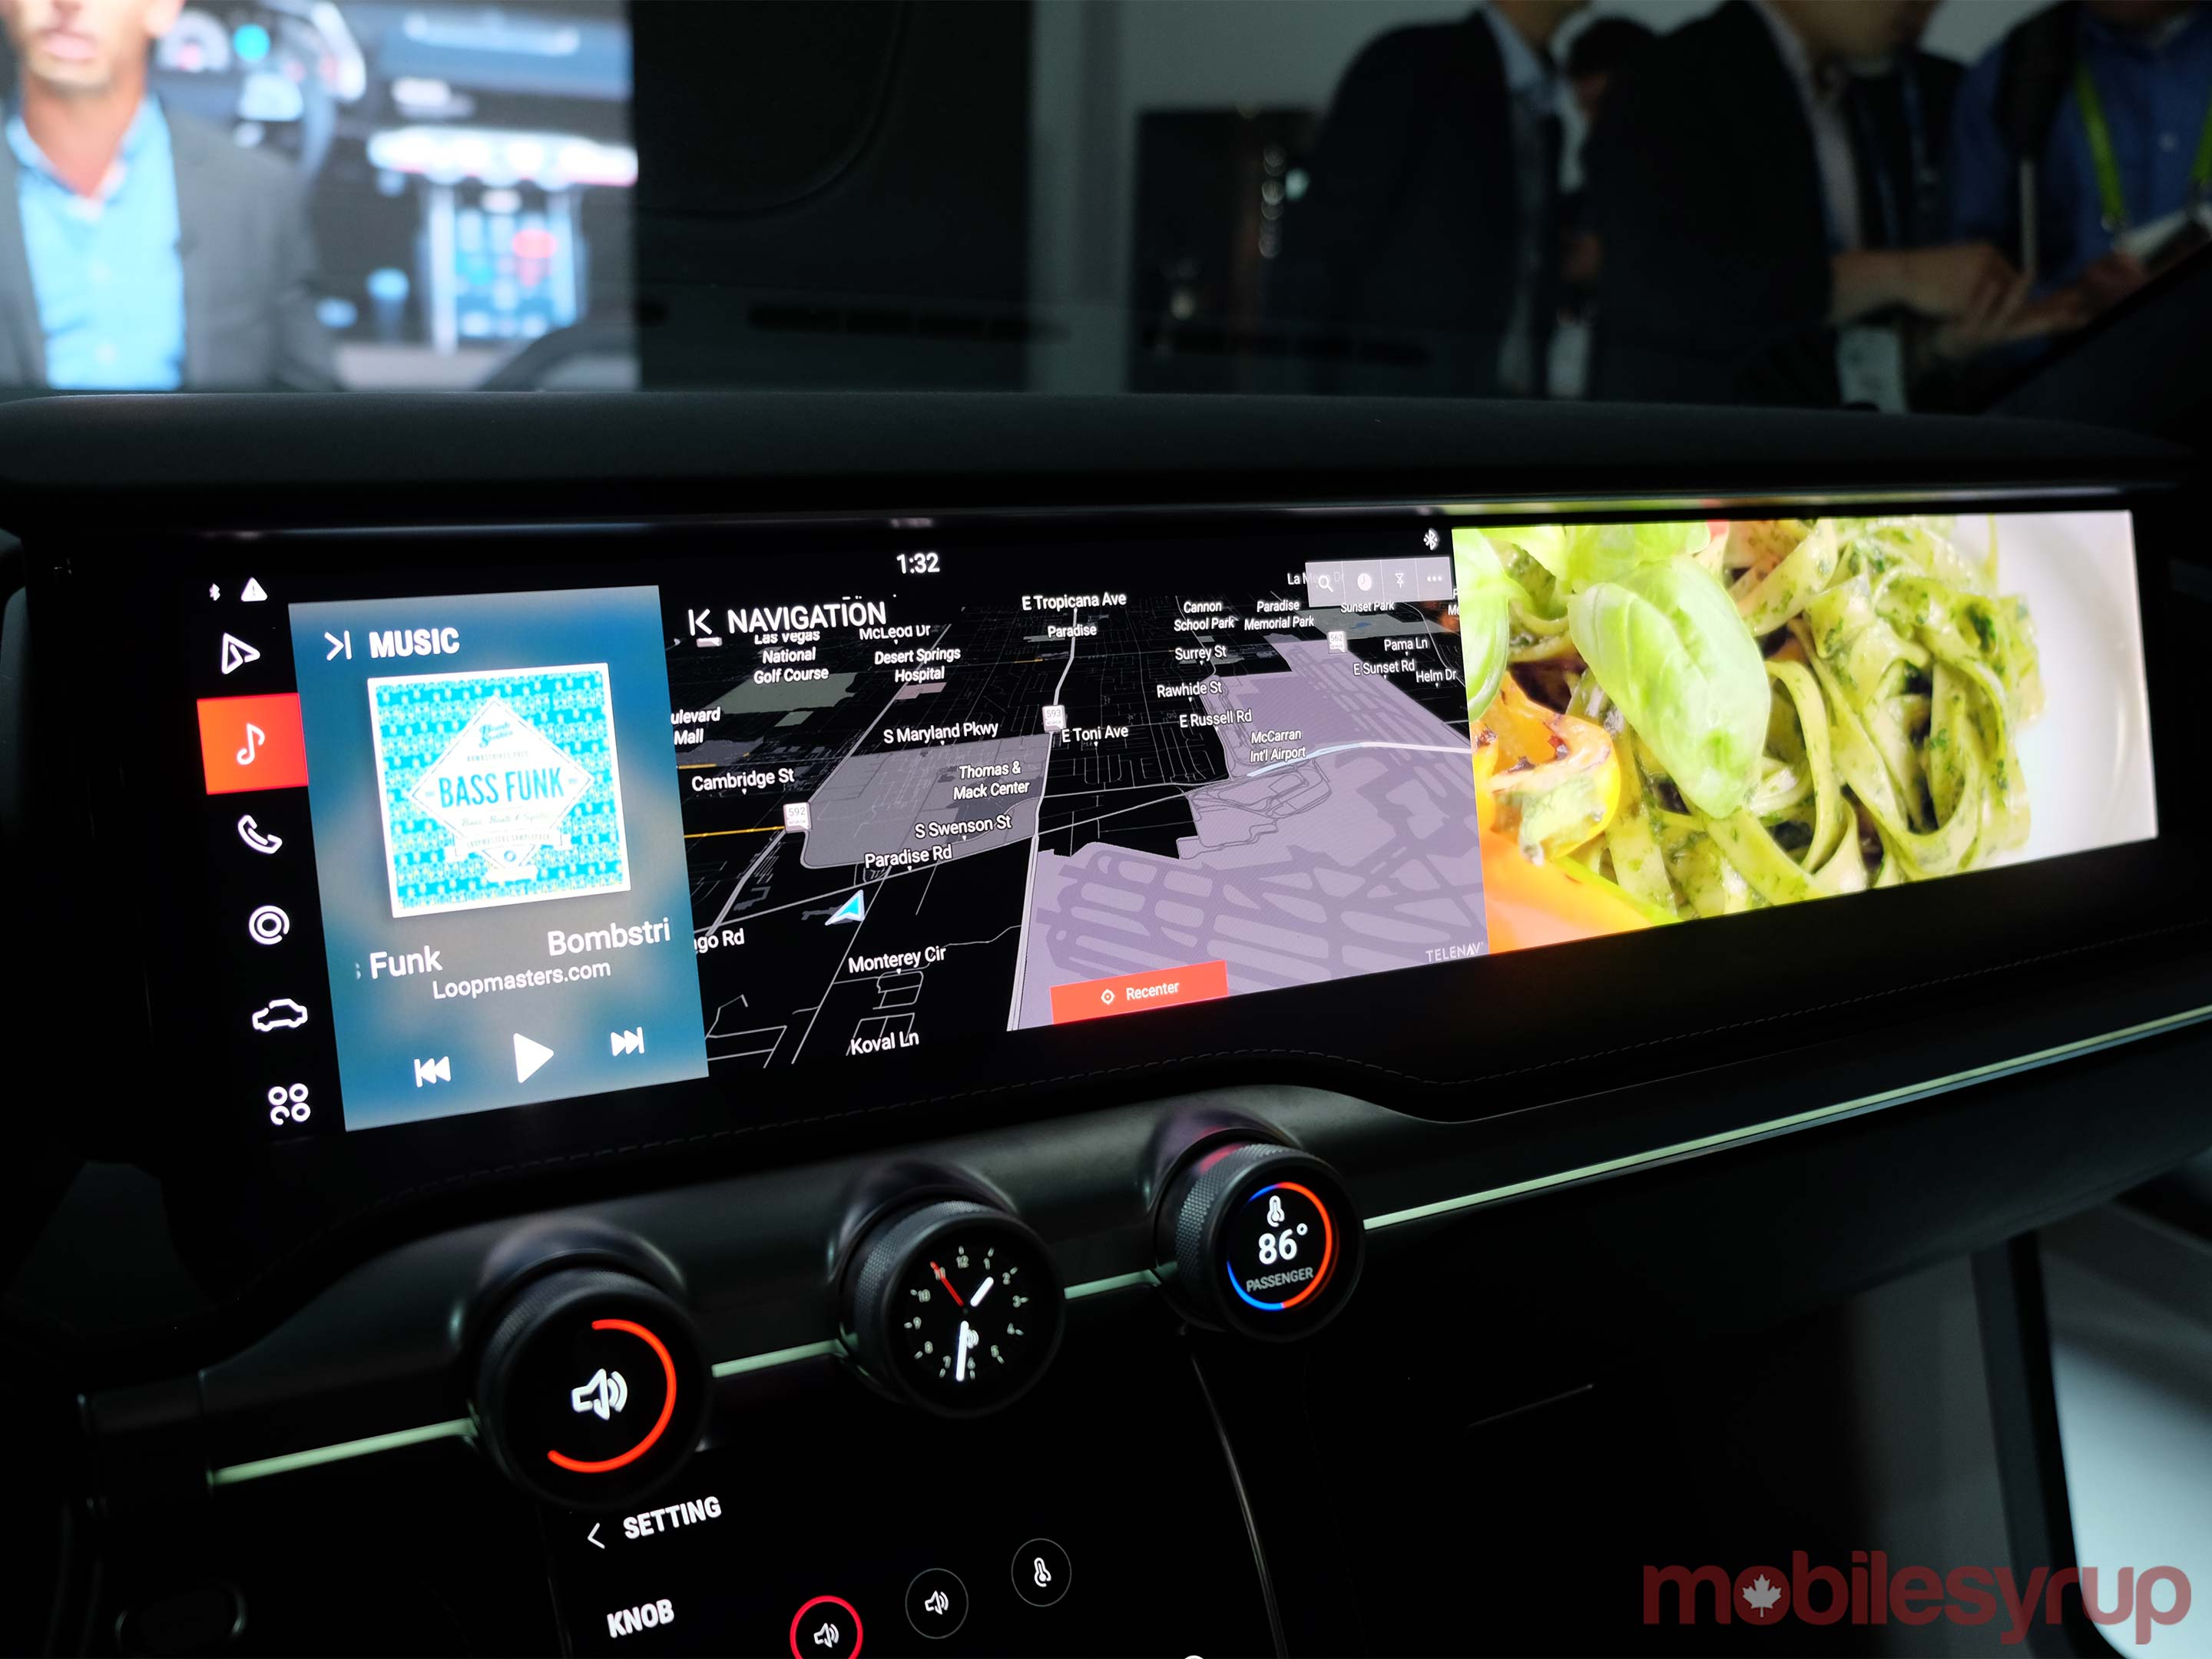 Samsung automotive infotainment display